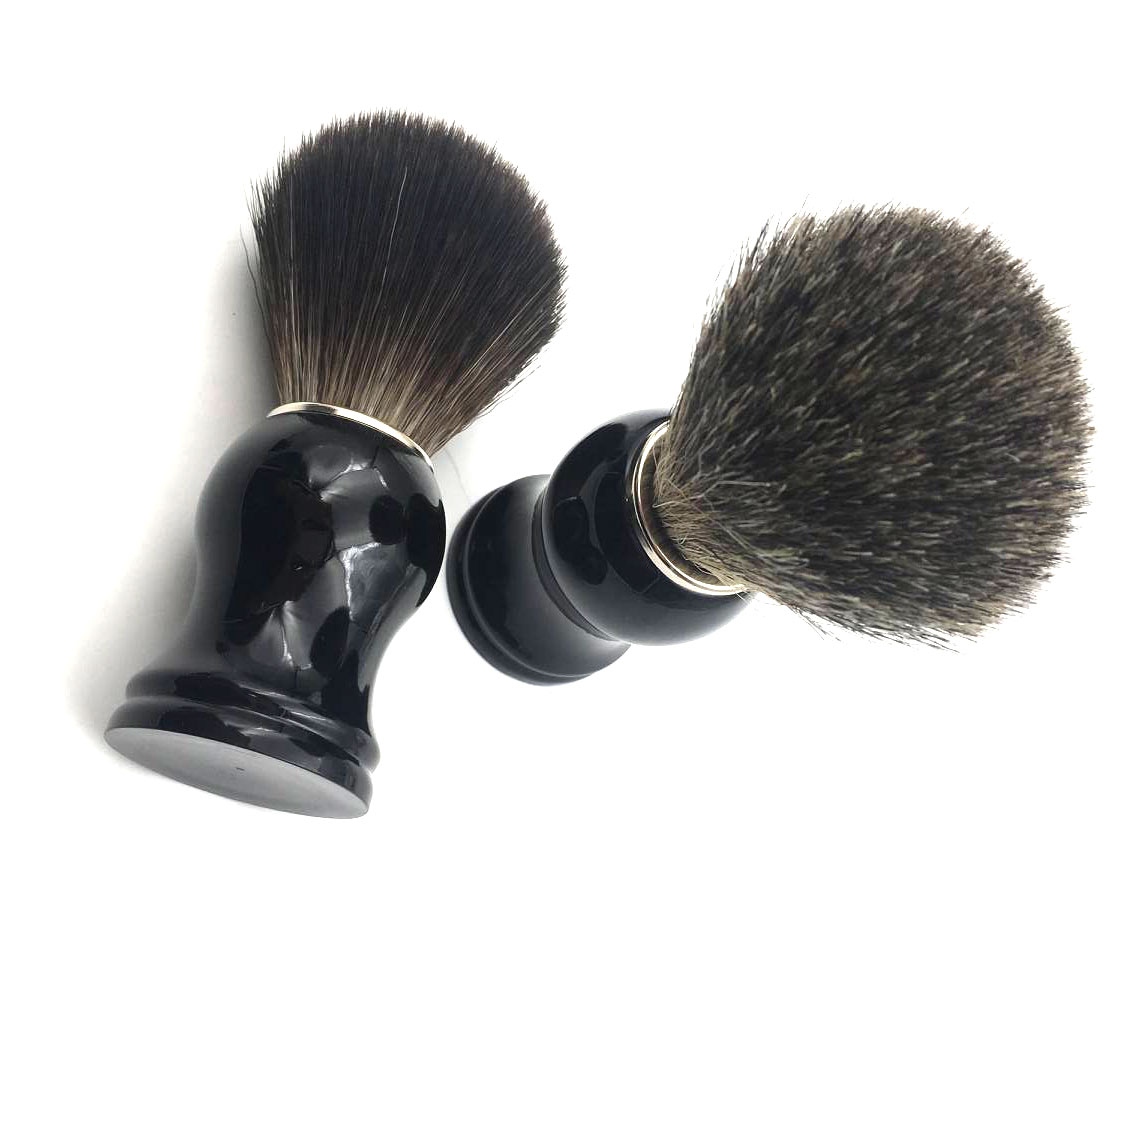 Hot selling product high quality black color Resin Handle Pure Badger shaving brush for men shave